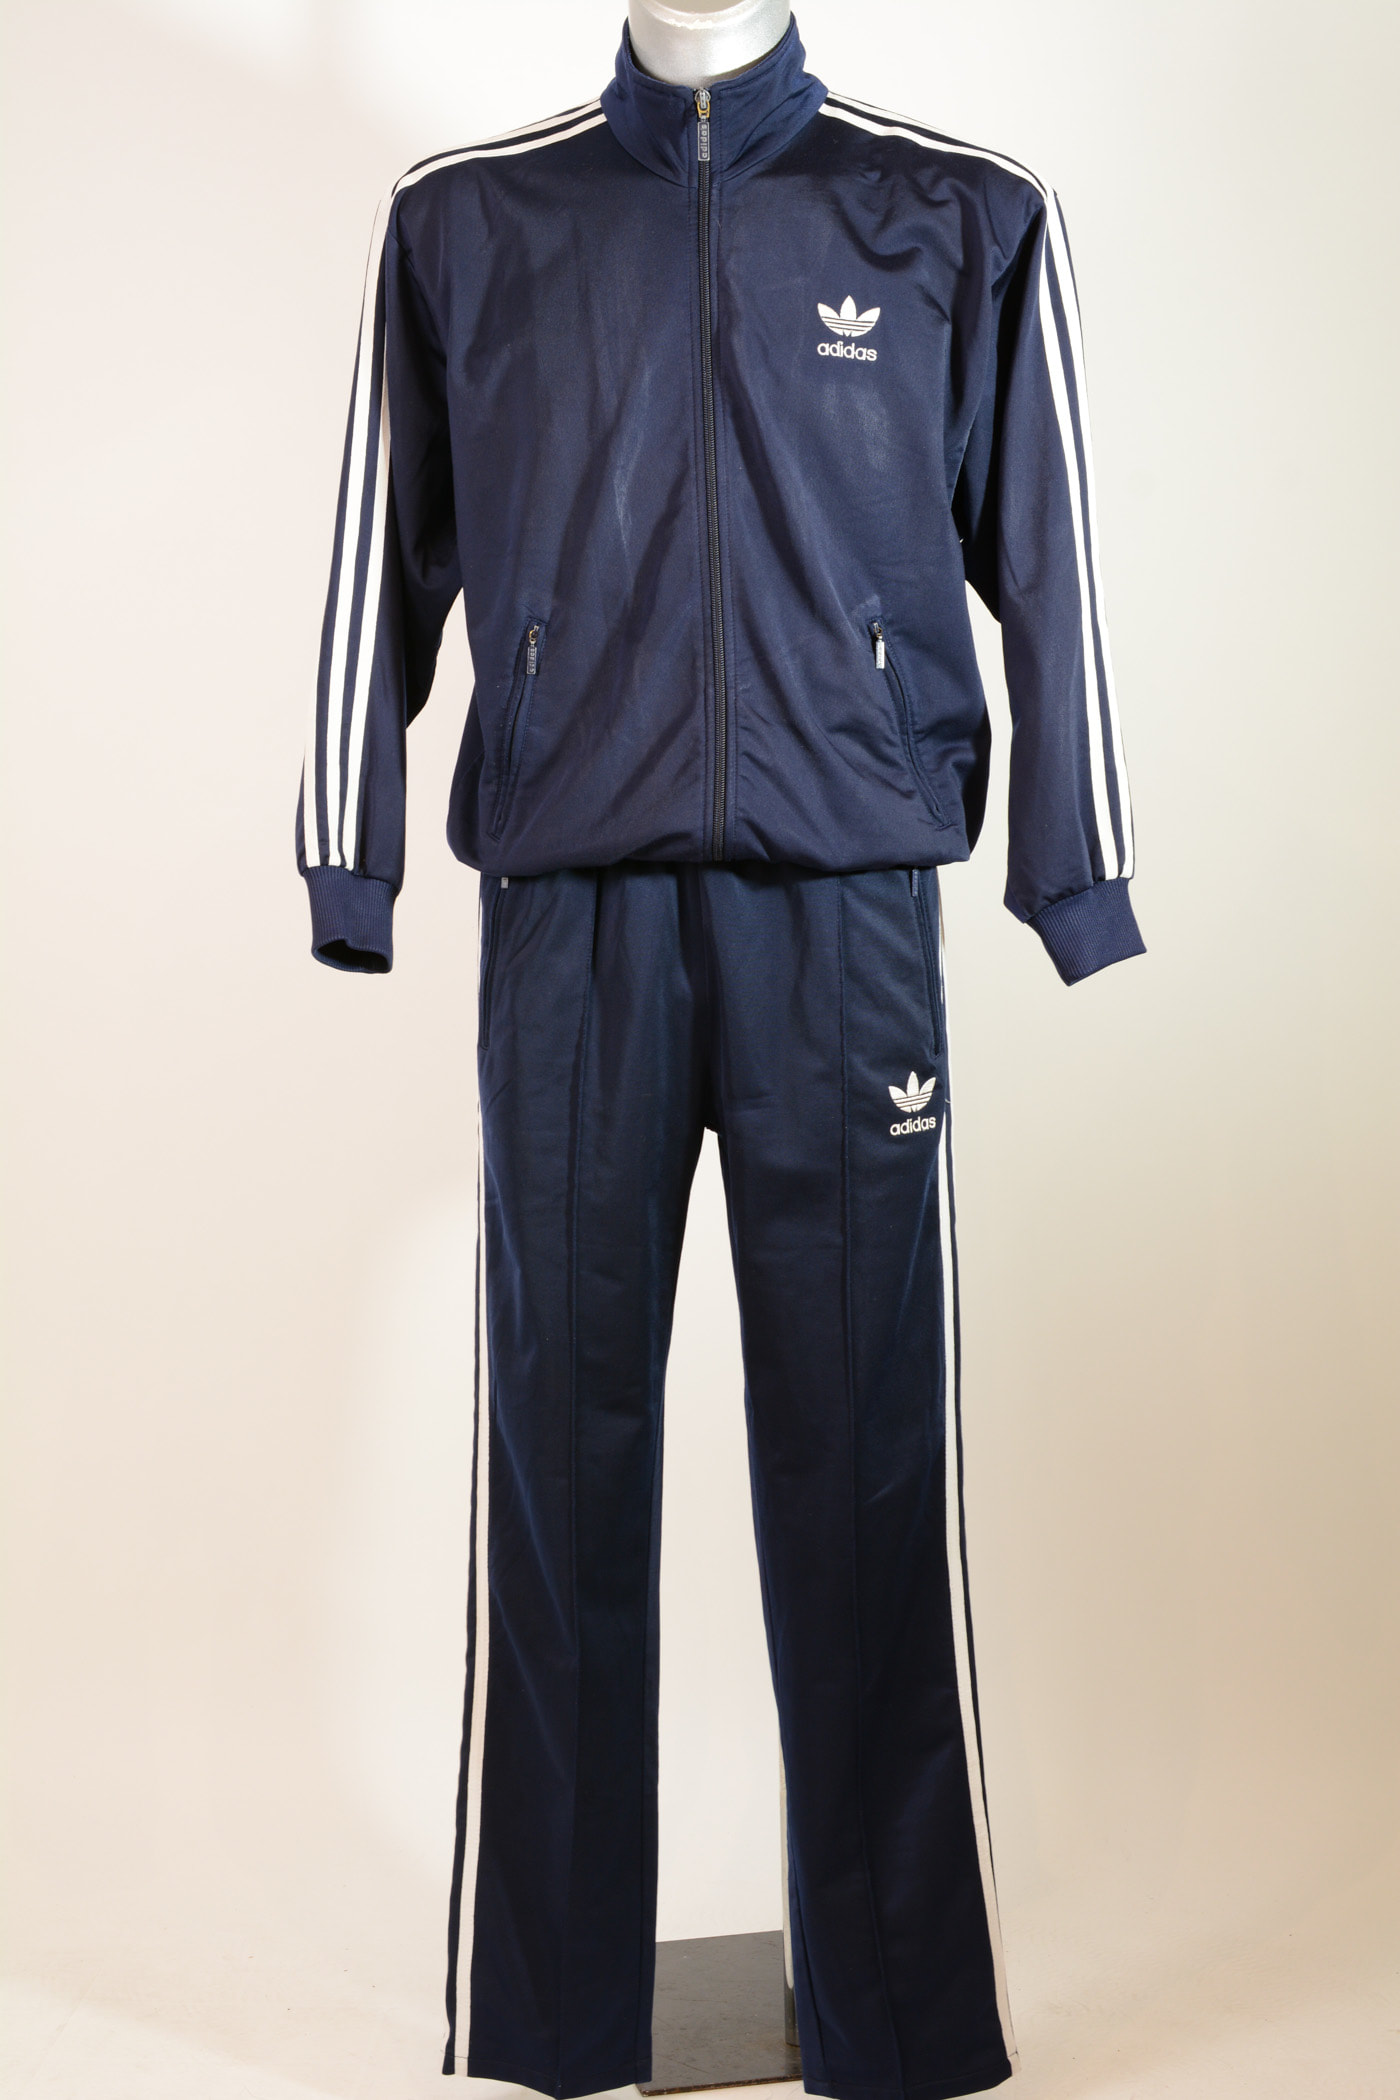 Adidas Tracksuit Tops Quot Firebird Quot All Sizes